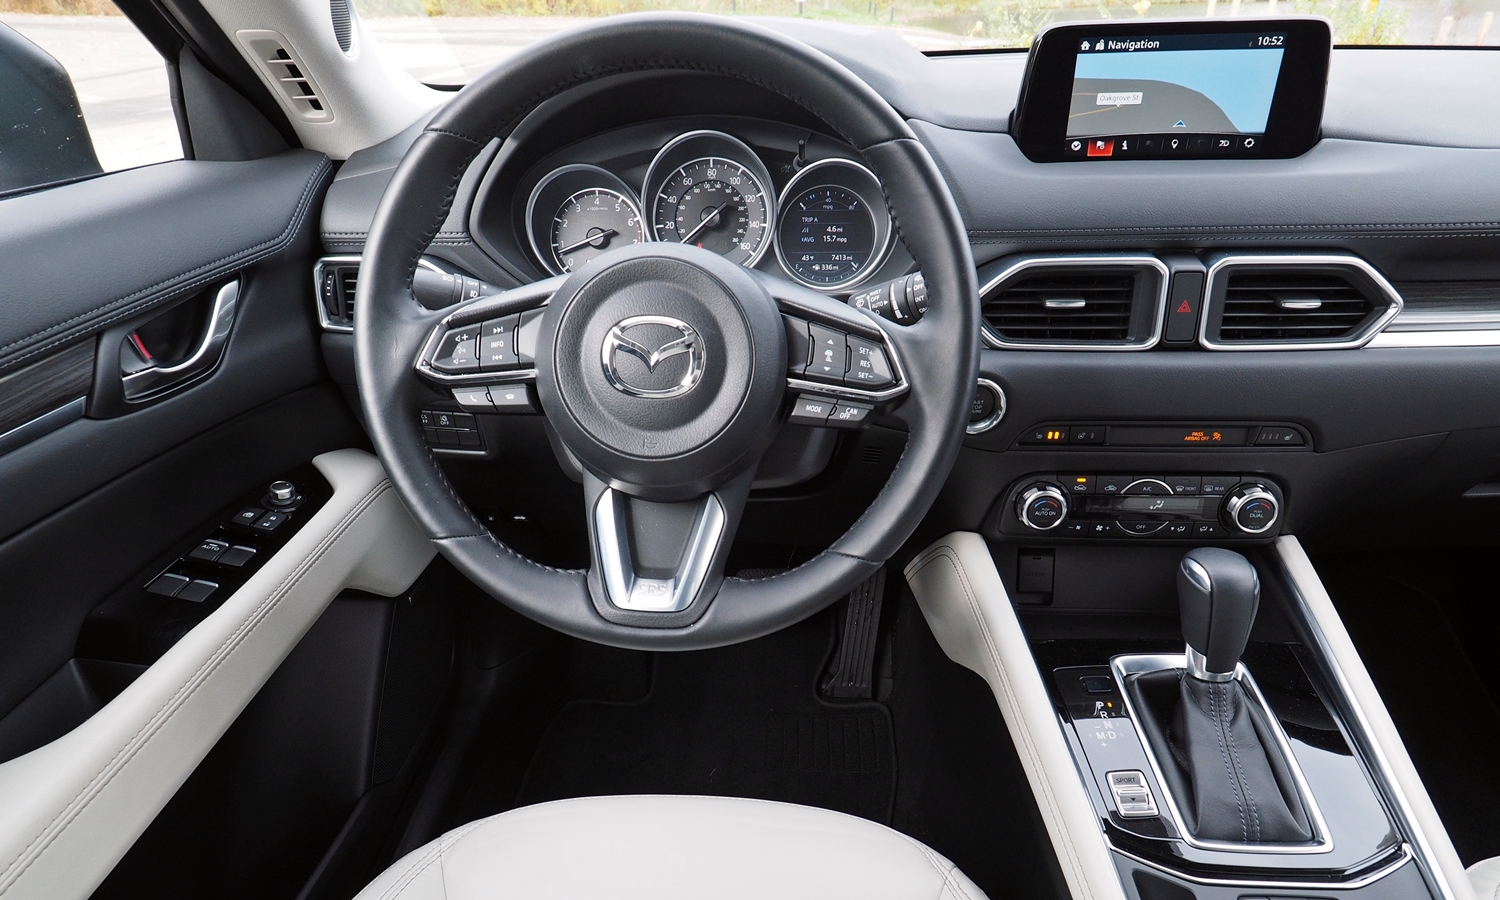 Mazda CX-5 Photos: 2017 Mazda CX-5 instrument panel